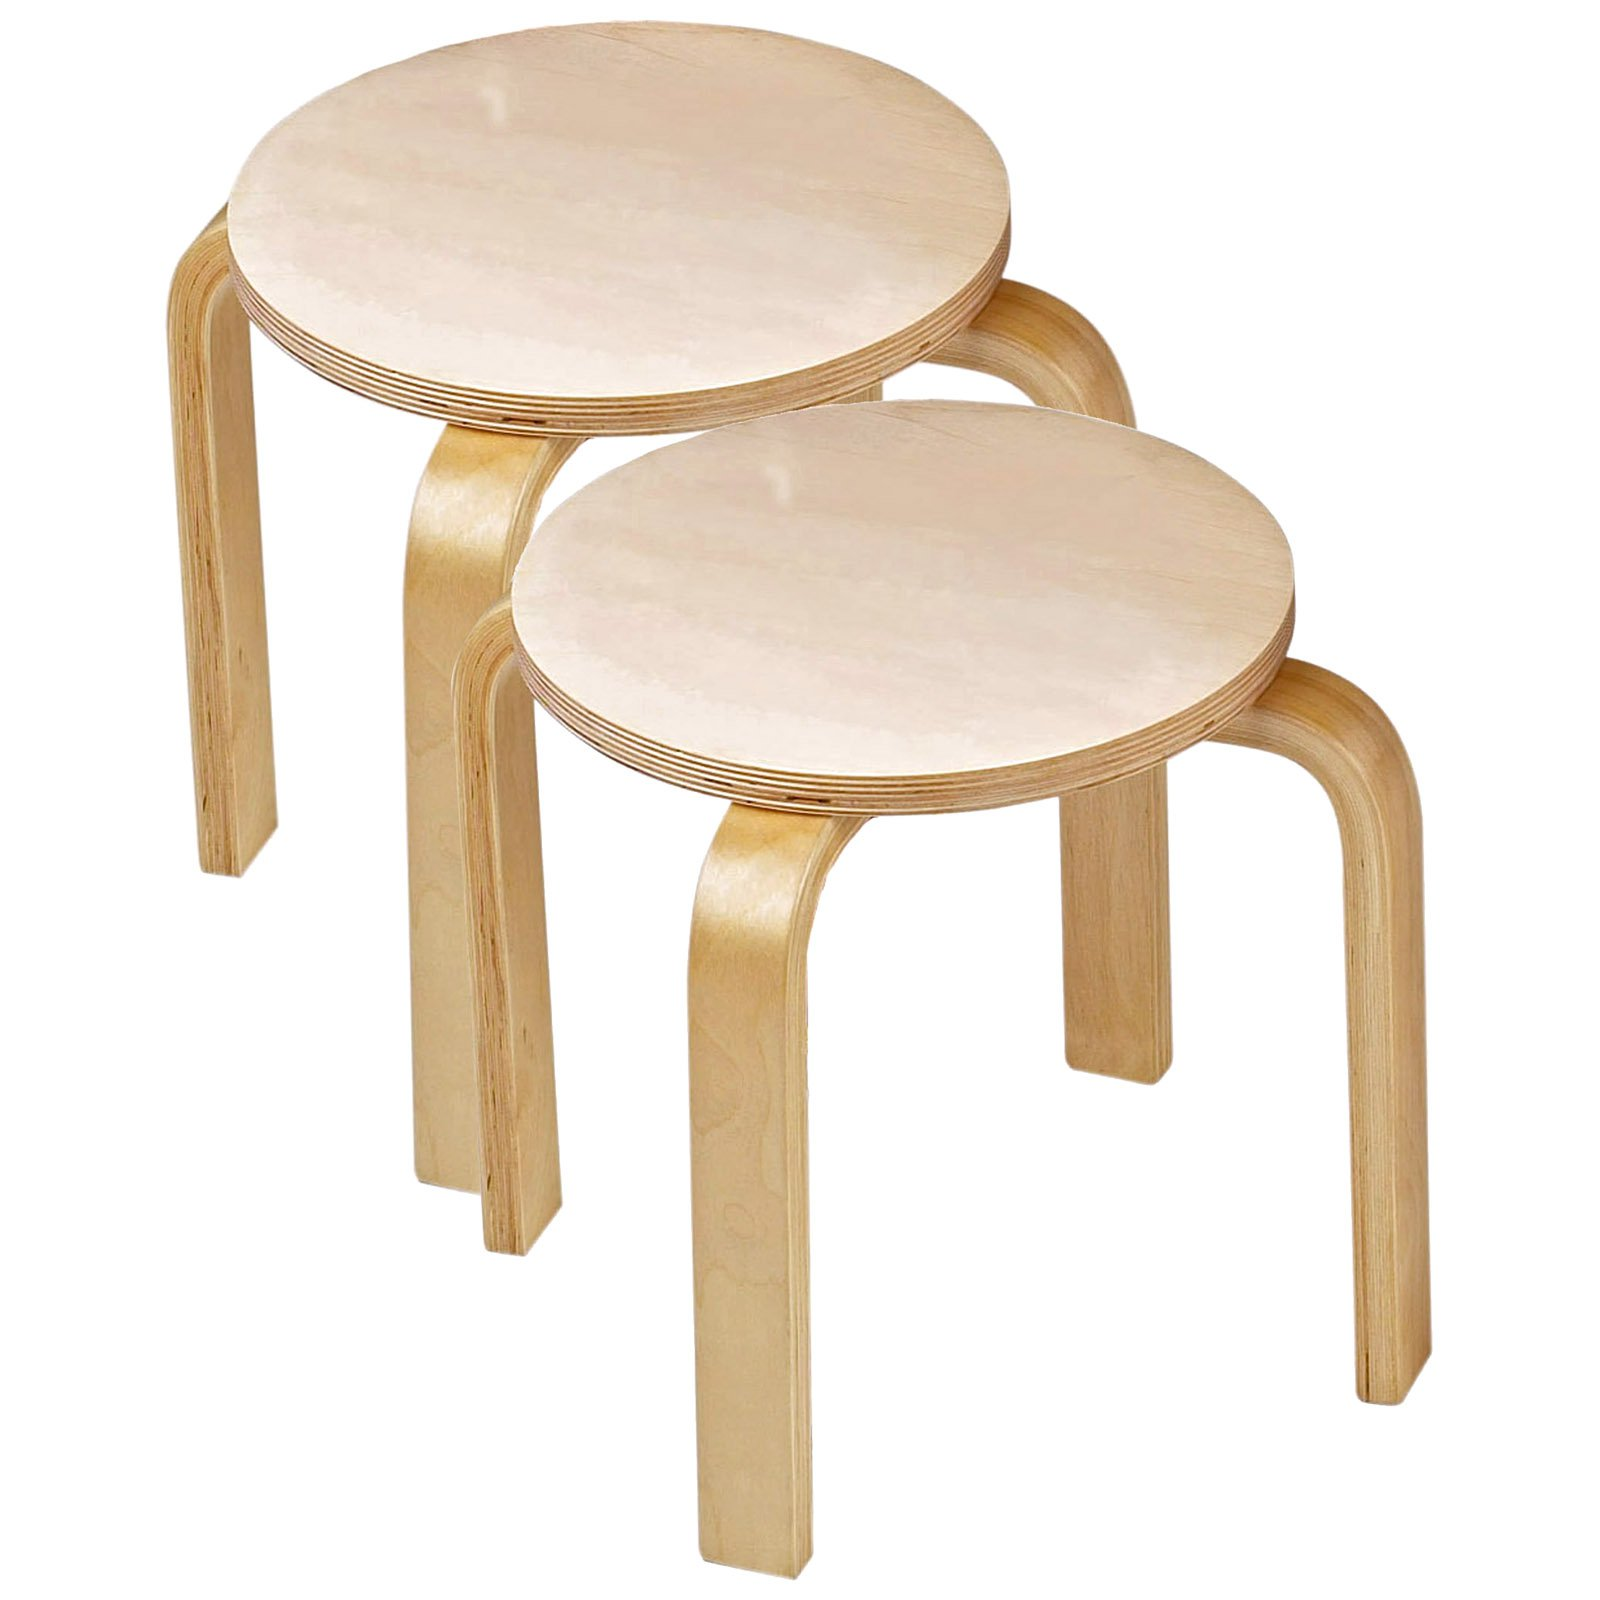 sc 1 st  Walmart & Anatex Wooden Sitting Stools - Set of Two - Walmart.com islam-shia.org